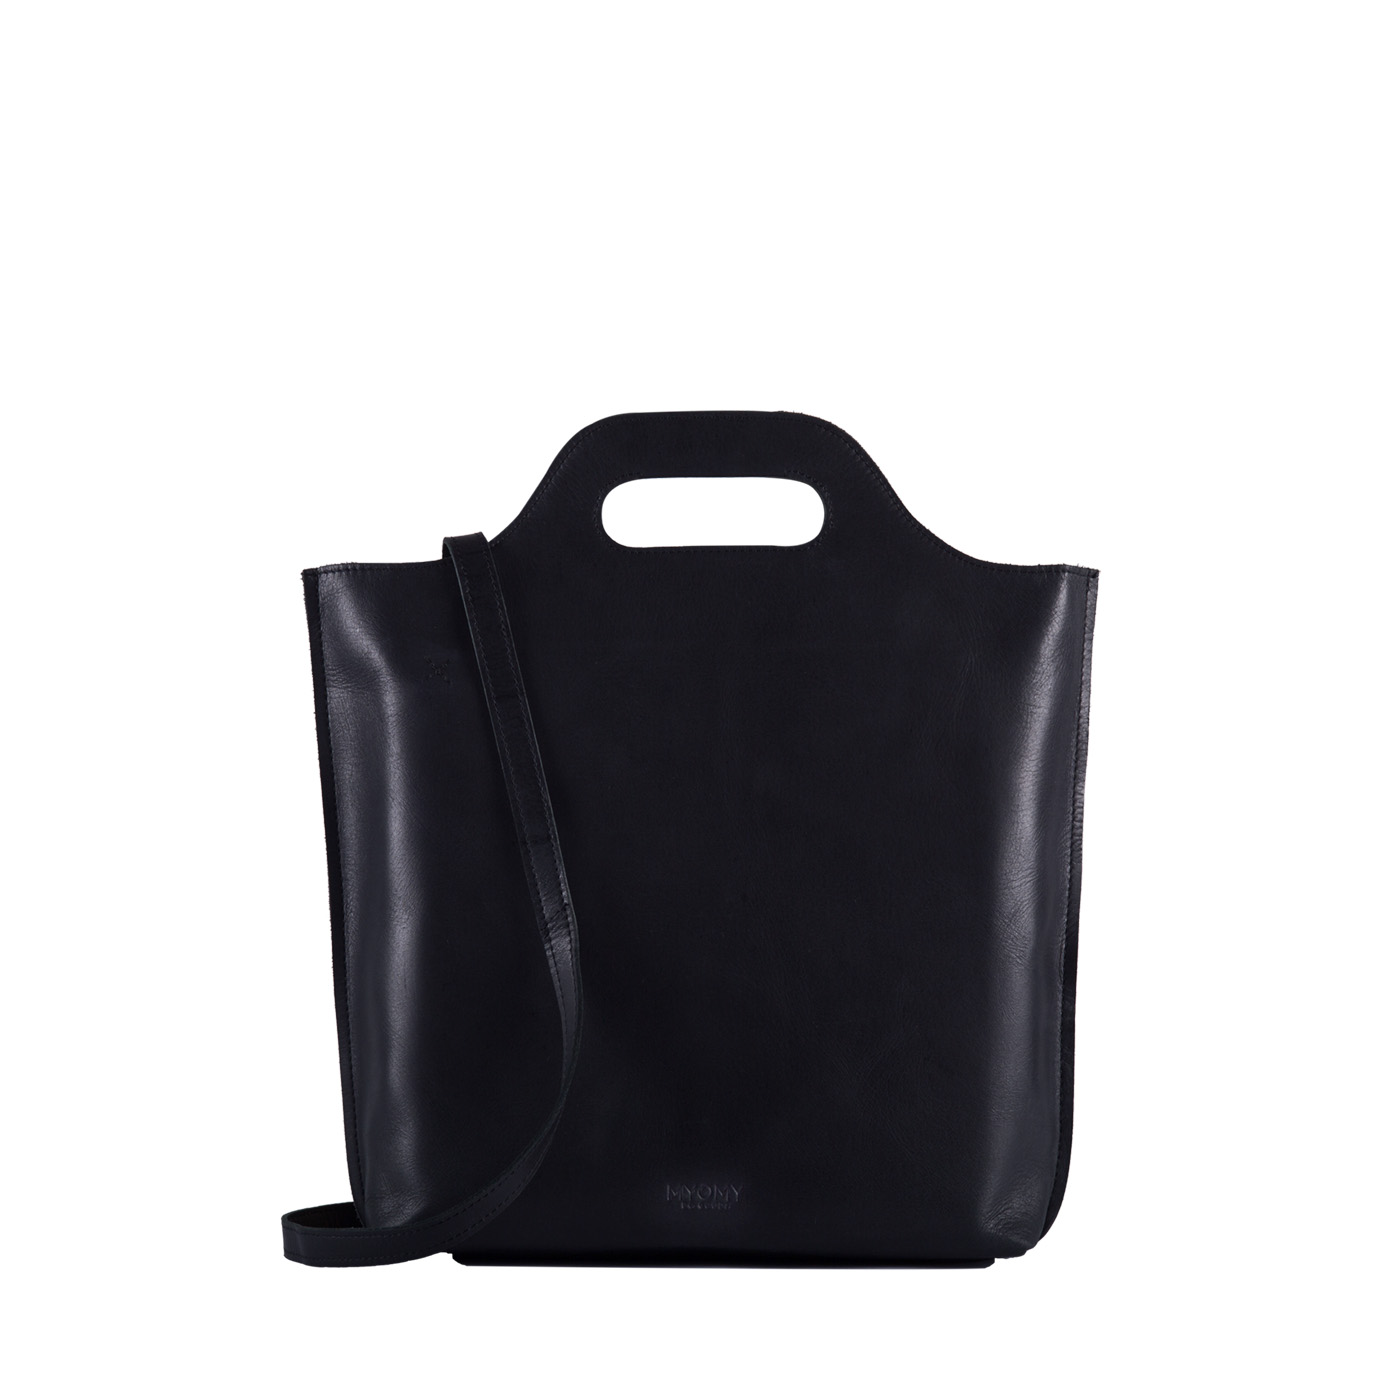 MY CARRY BAG shopper medium- hunter waxy black